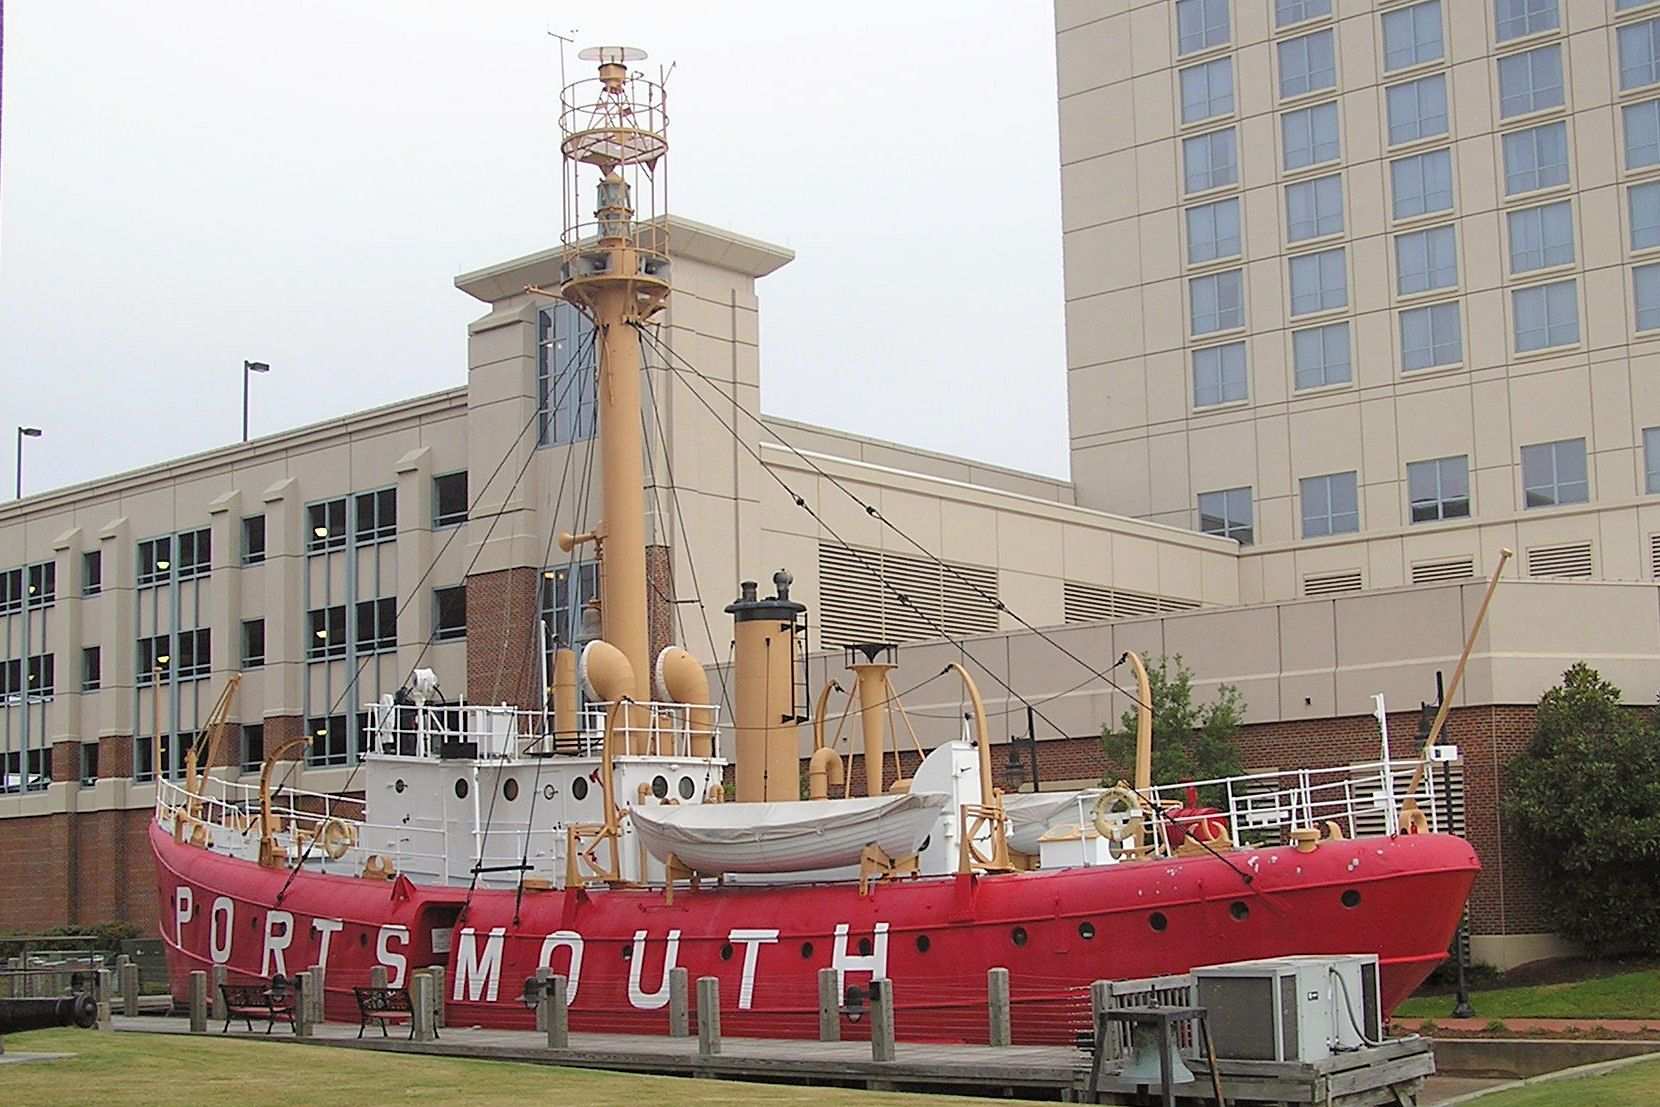 In 1964, she was retired to Portsmouth, Virginia and renamed according to the custom of naming lightships after the site where they are stationed